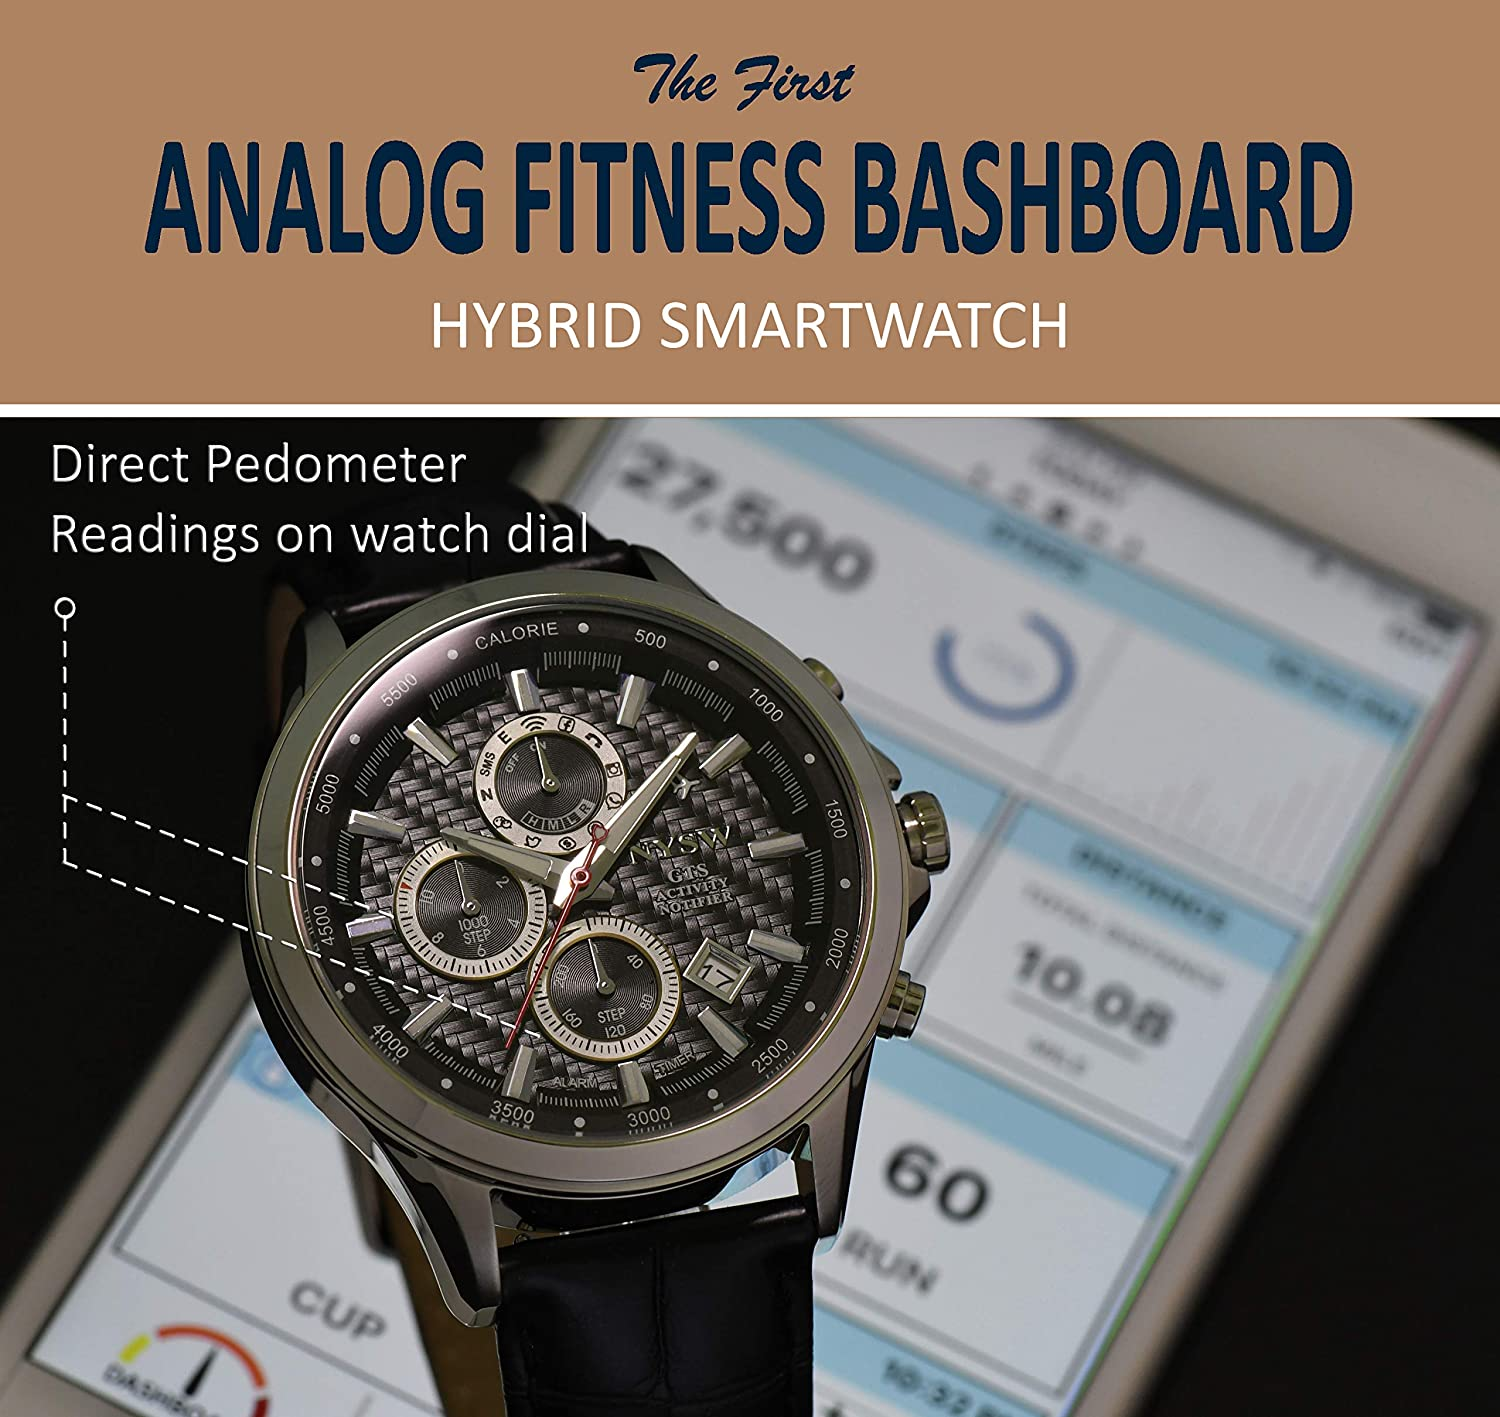 Worlds 1st Hybrid Smartwatch for Men with Perpetual Calendar NYSW This luxury fitness tracker with direct Steps Reading on Dial Advanced discreet Haptic Vibration notification NY-SH-05